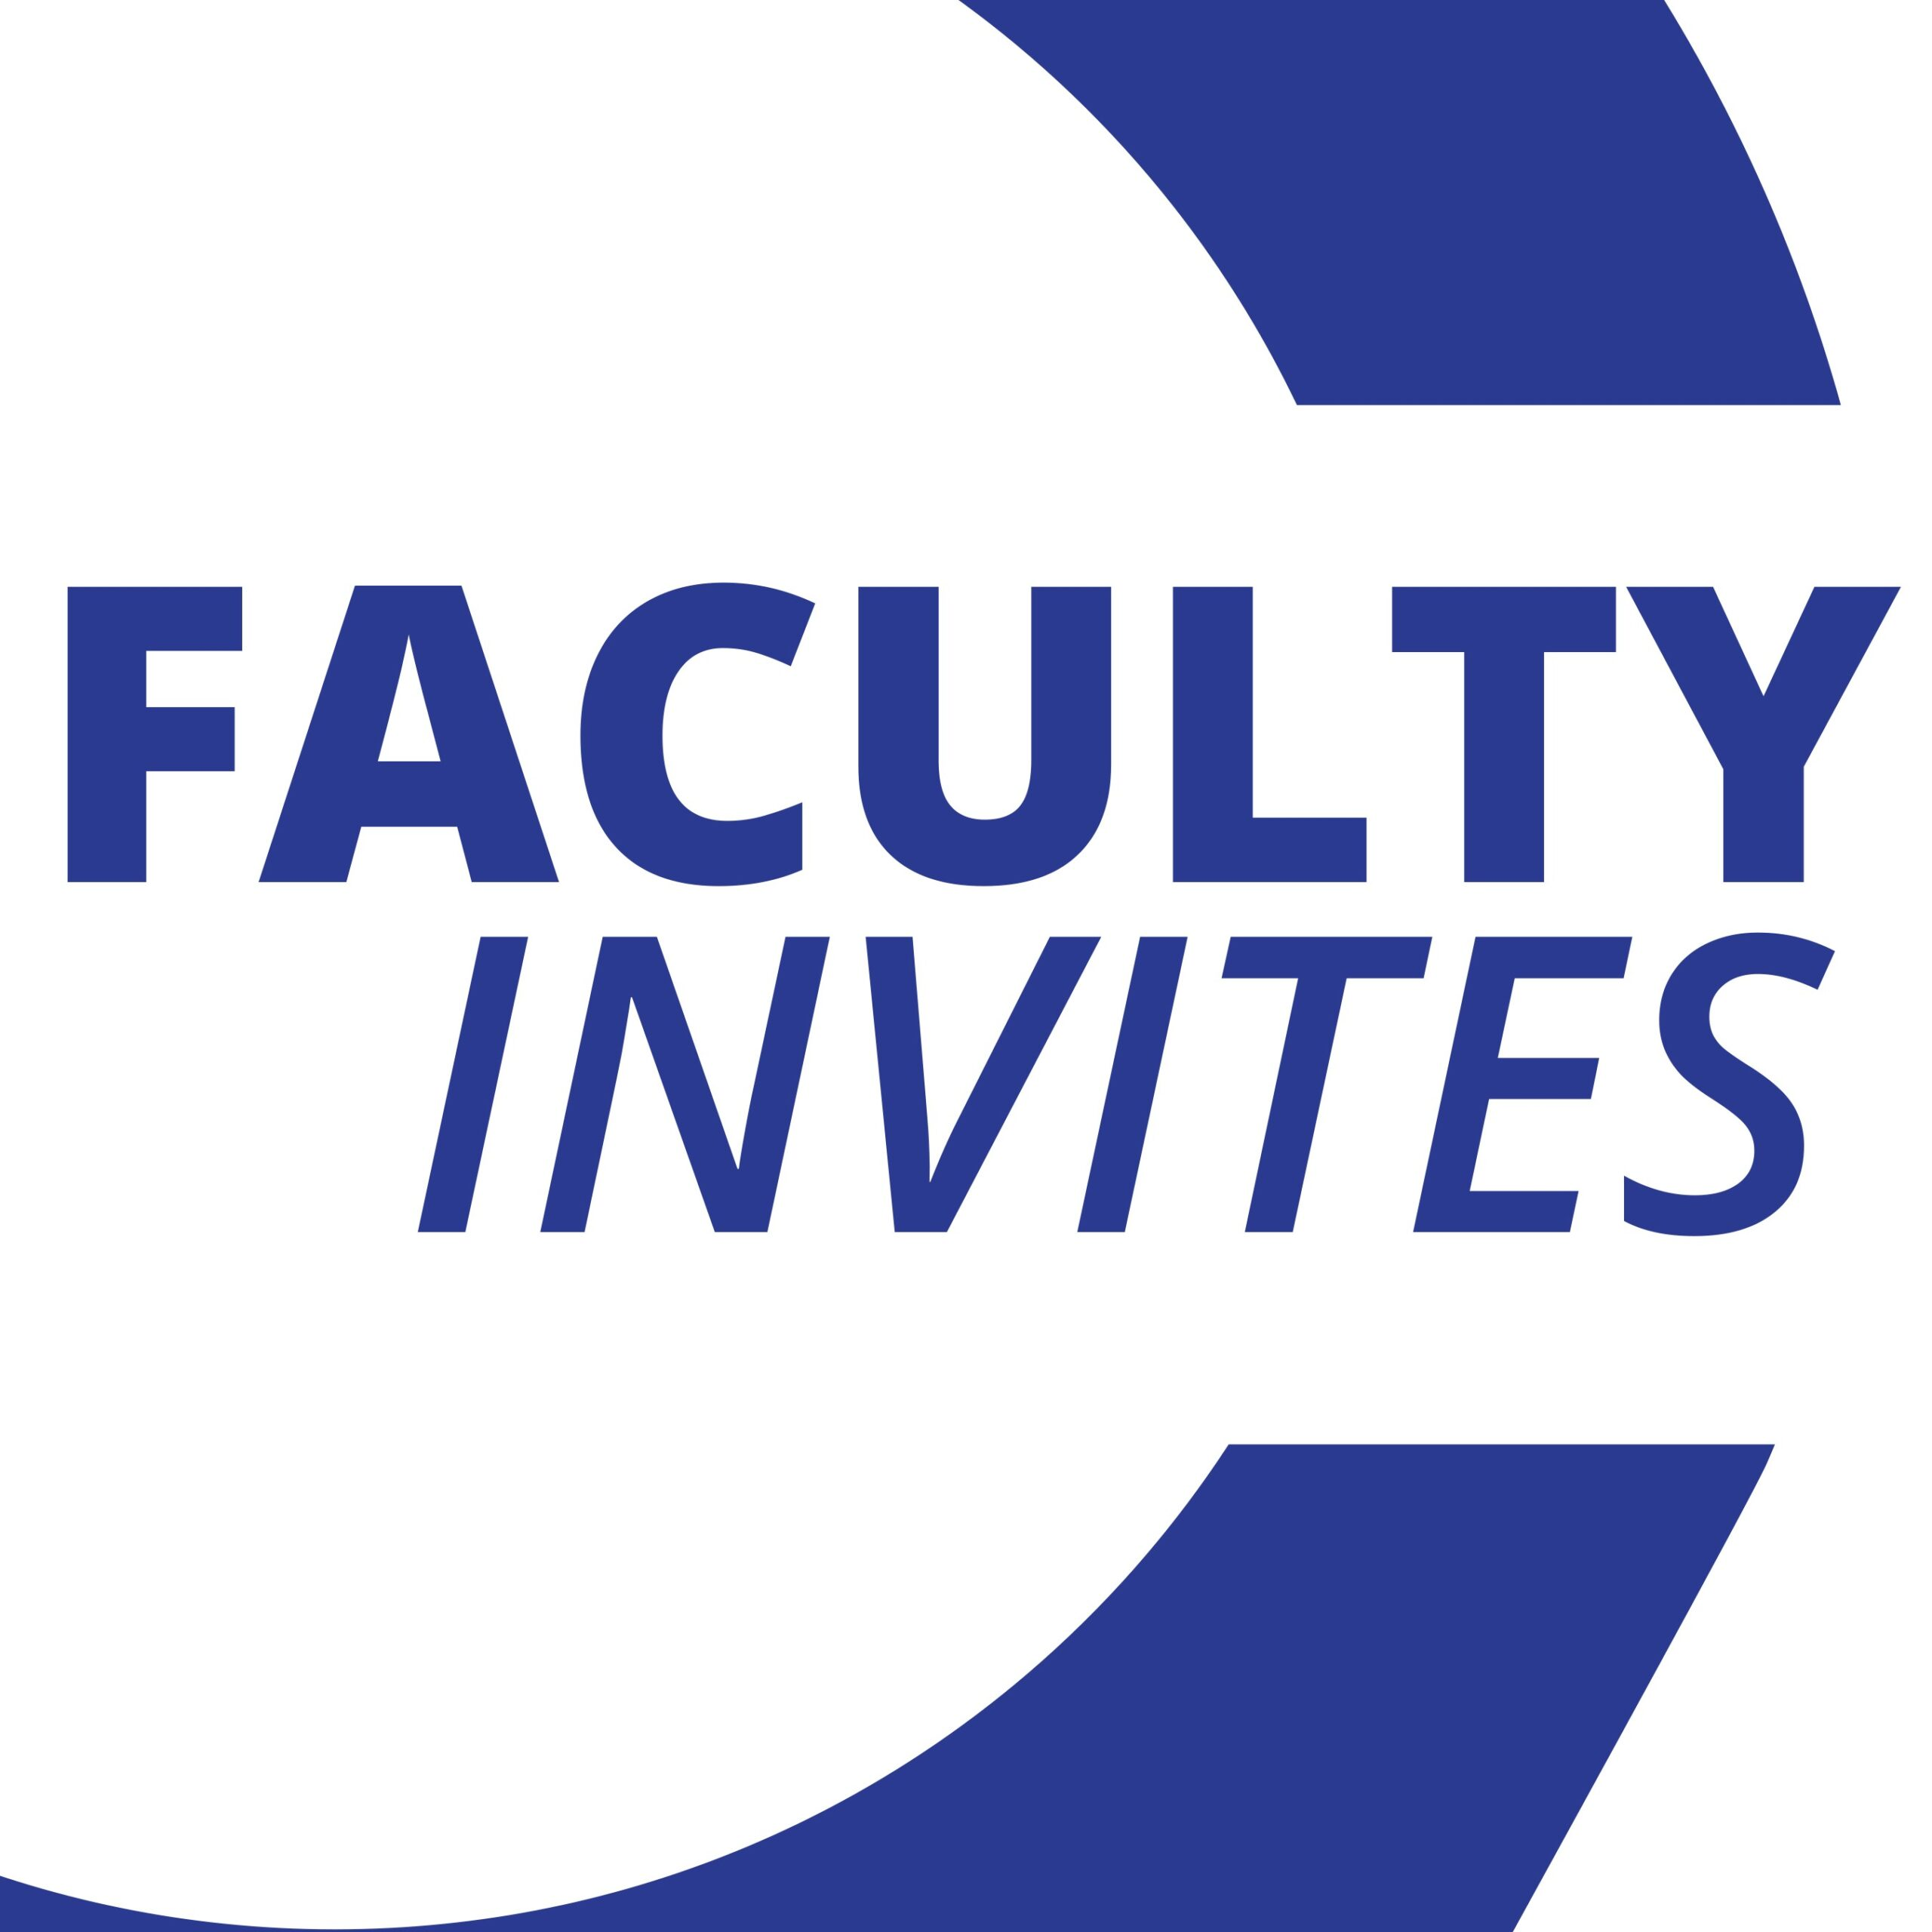 Faculty Invites